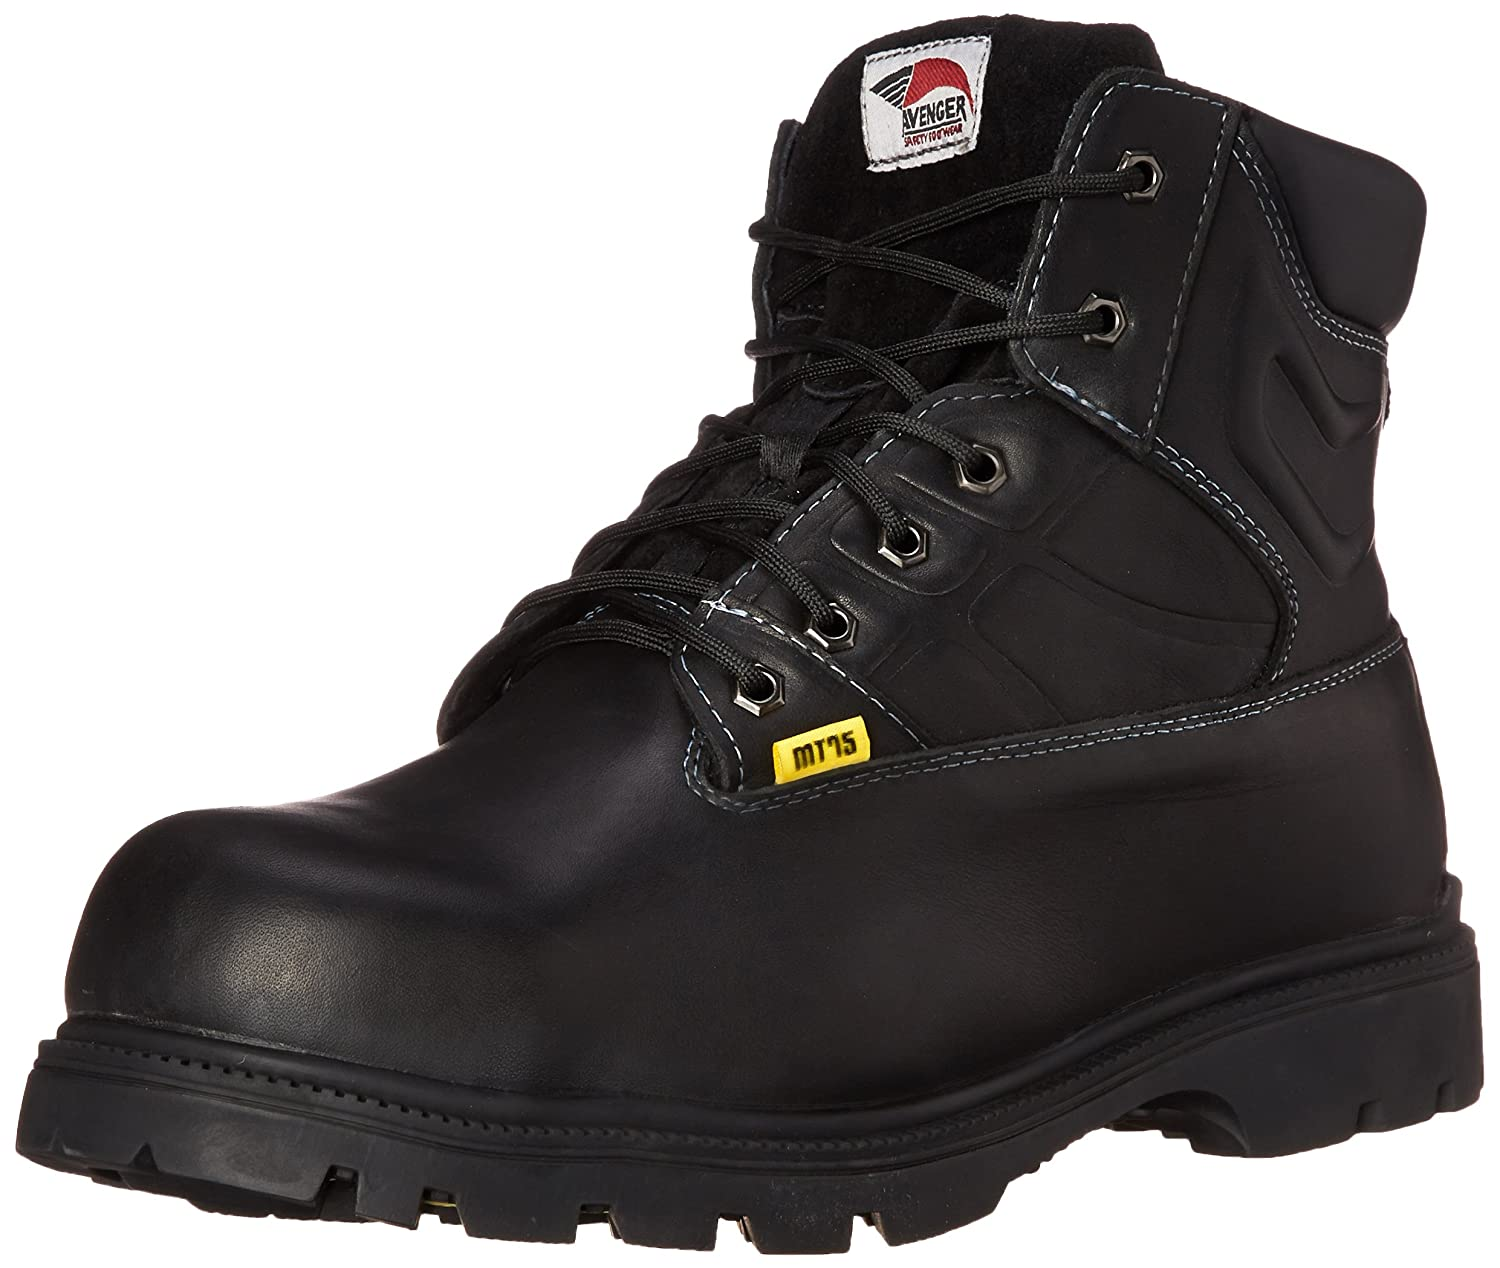 Avenger 7300 Leather  Safety Toe EH Internal Met Guard High Heat Outsole Work Boot